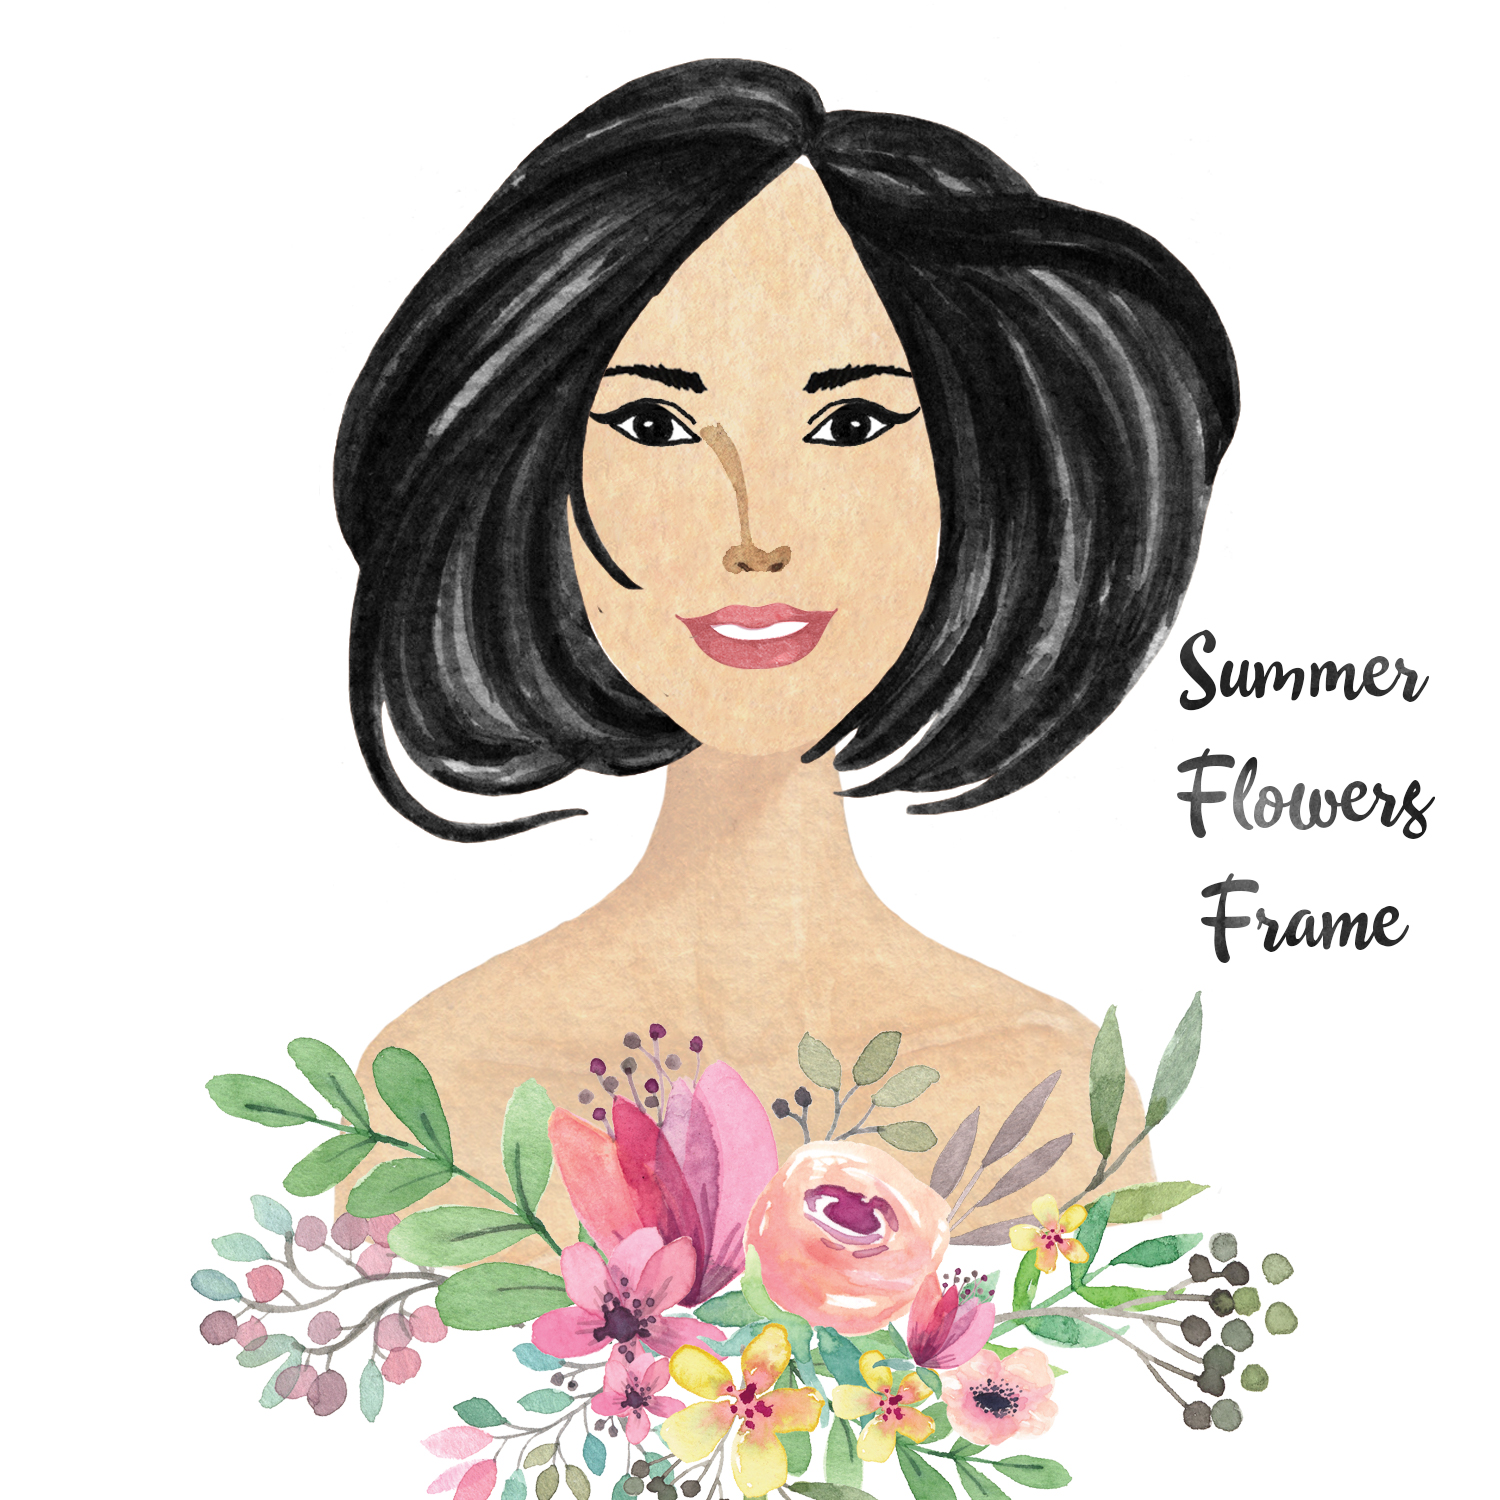 Frame Summer Flowers.jpg